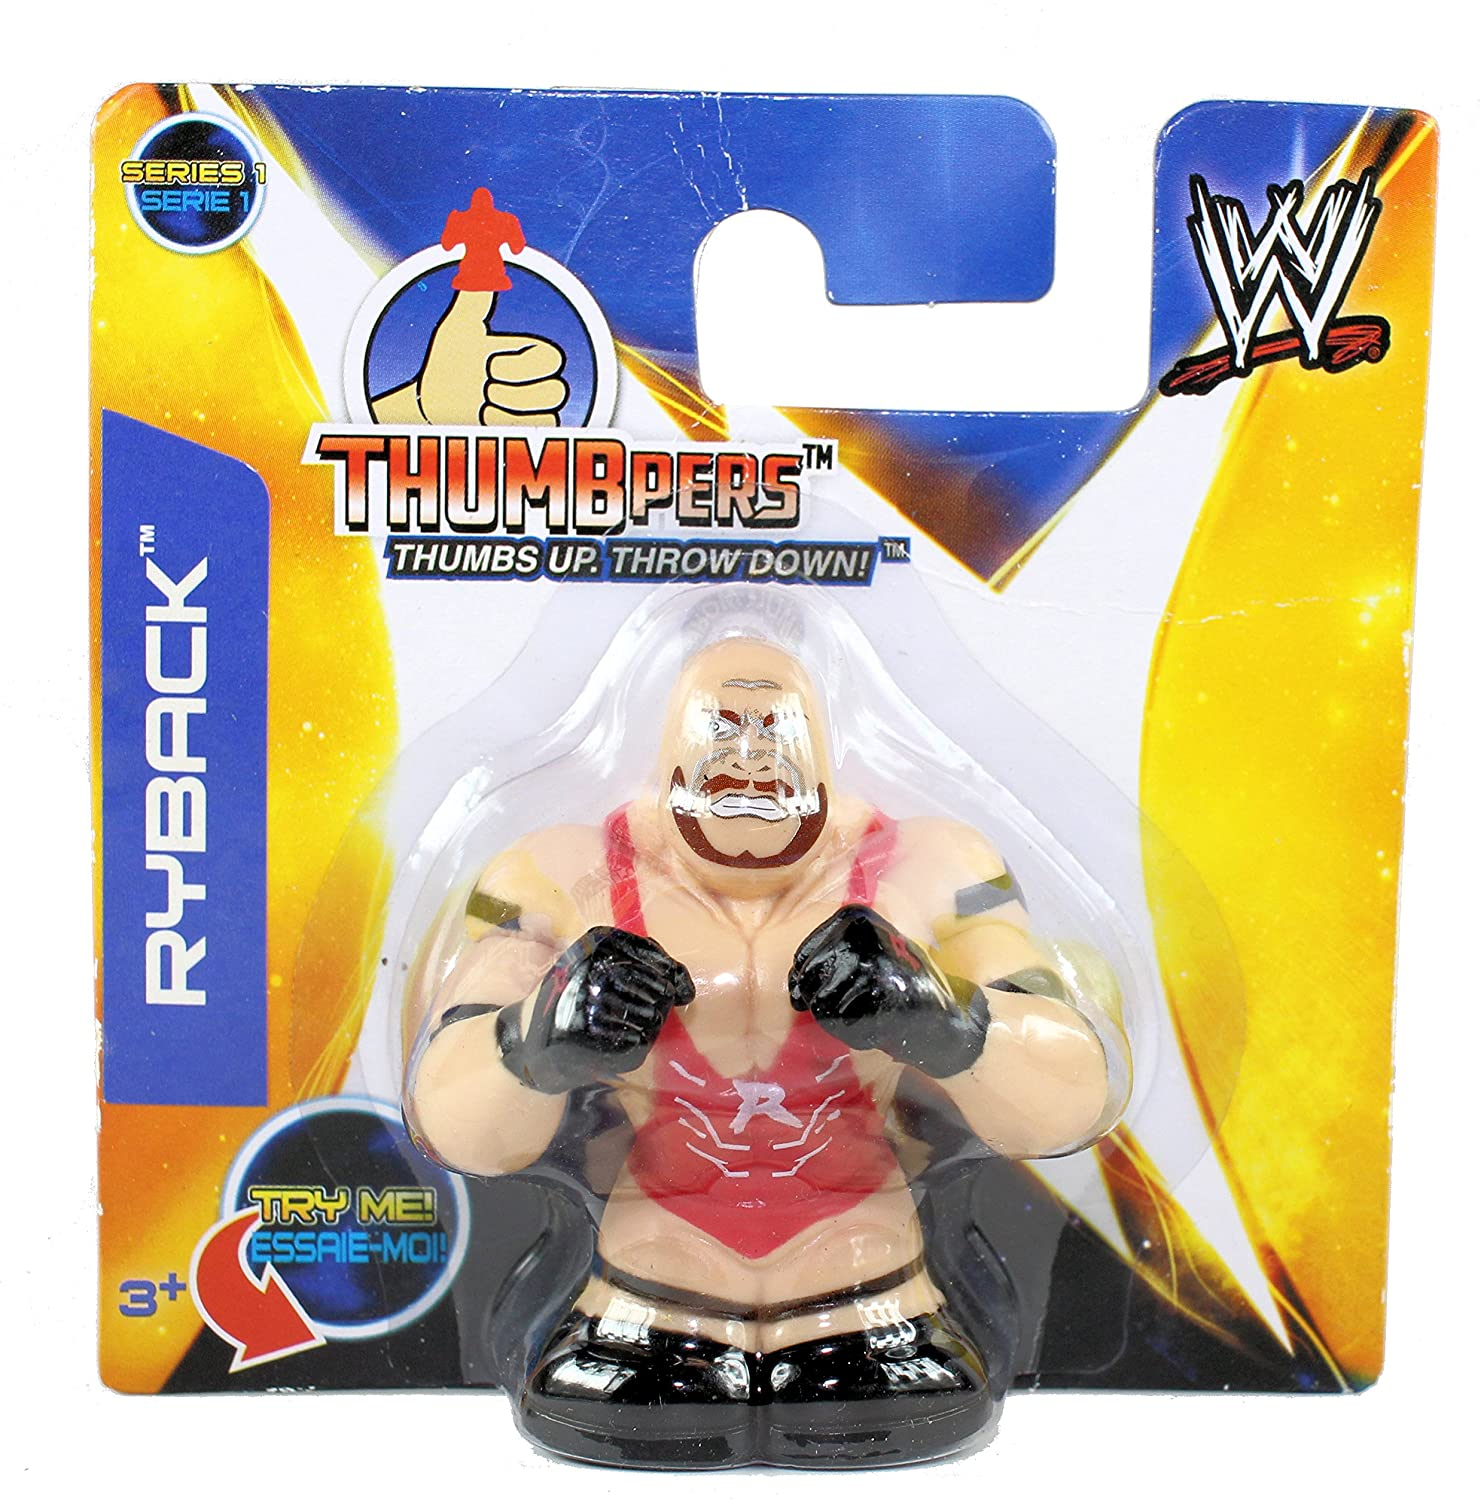 WWE Thumbpers Series 1 - Wrestling Action Toy Figure - RYBACK